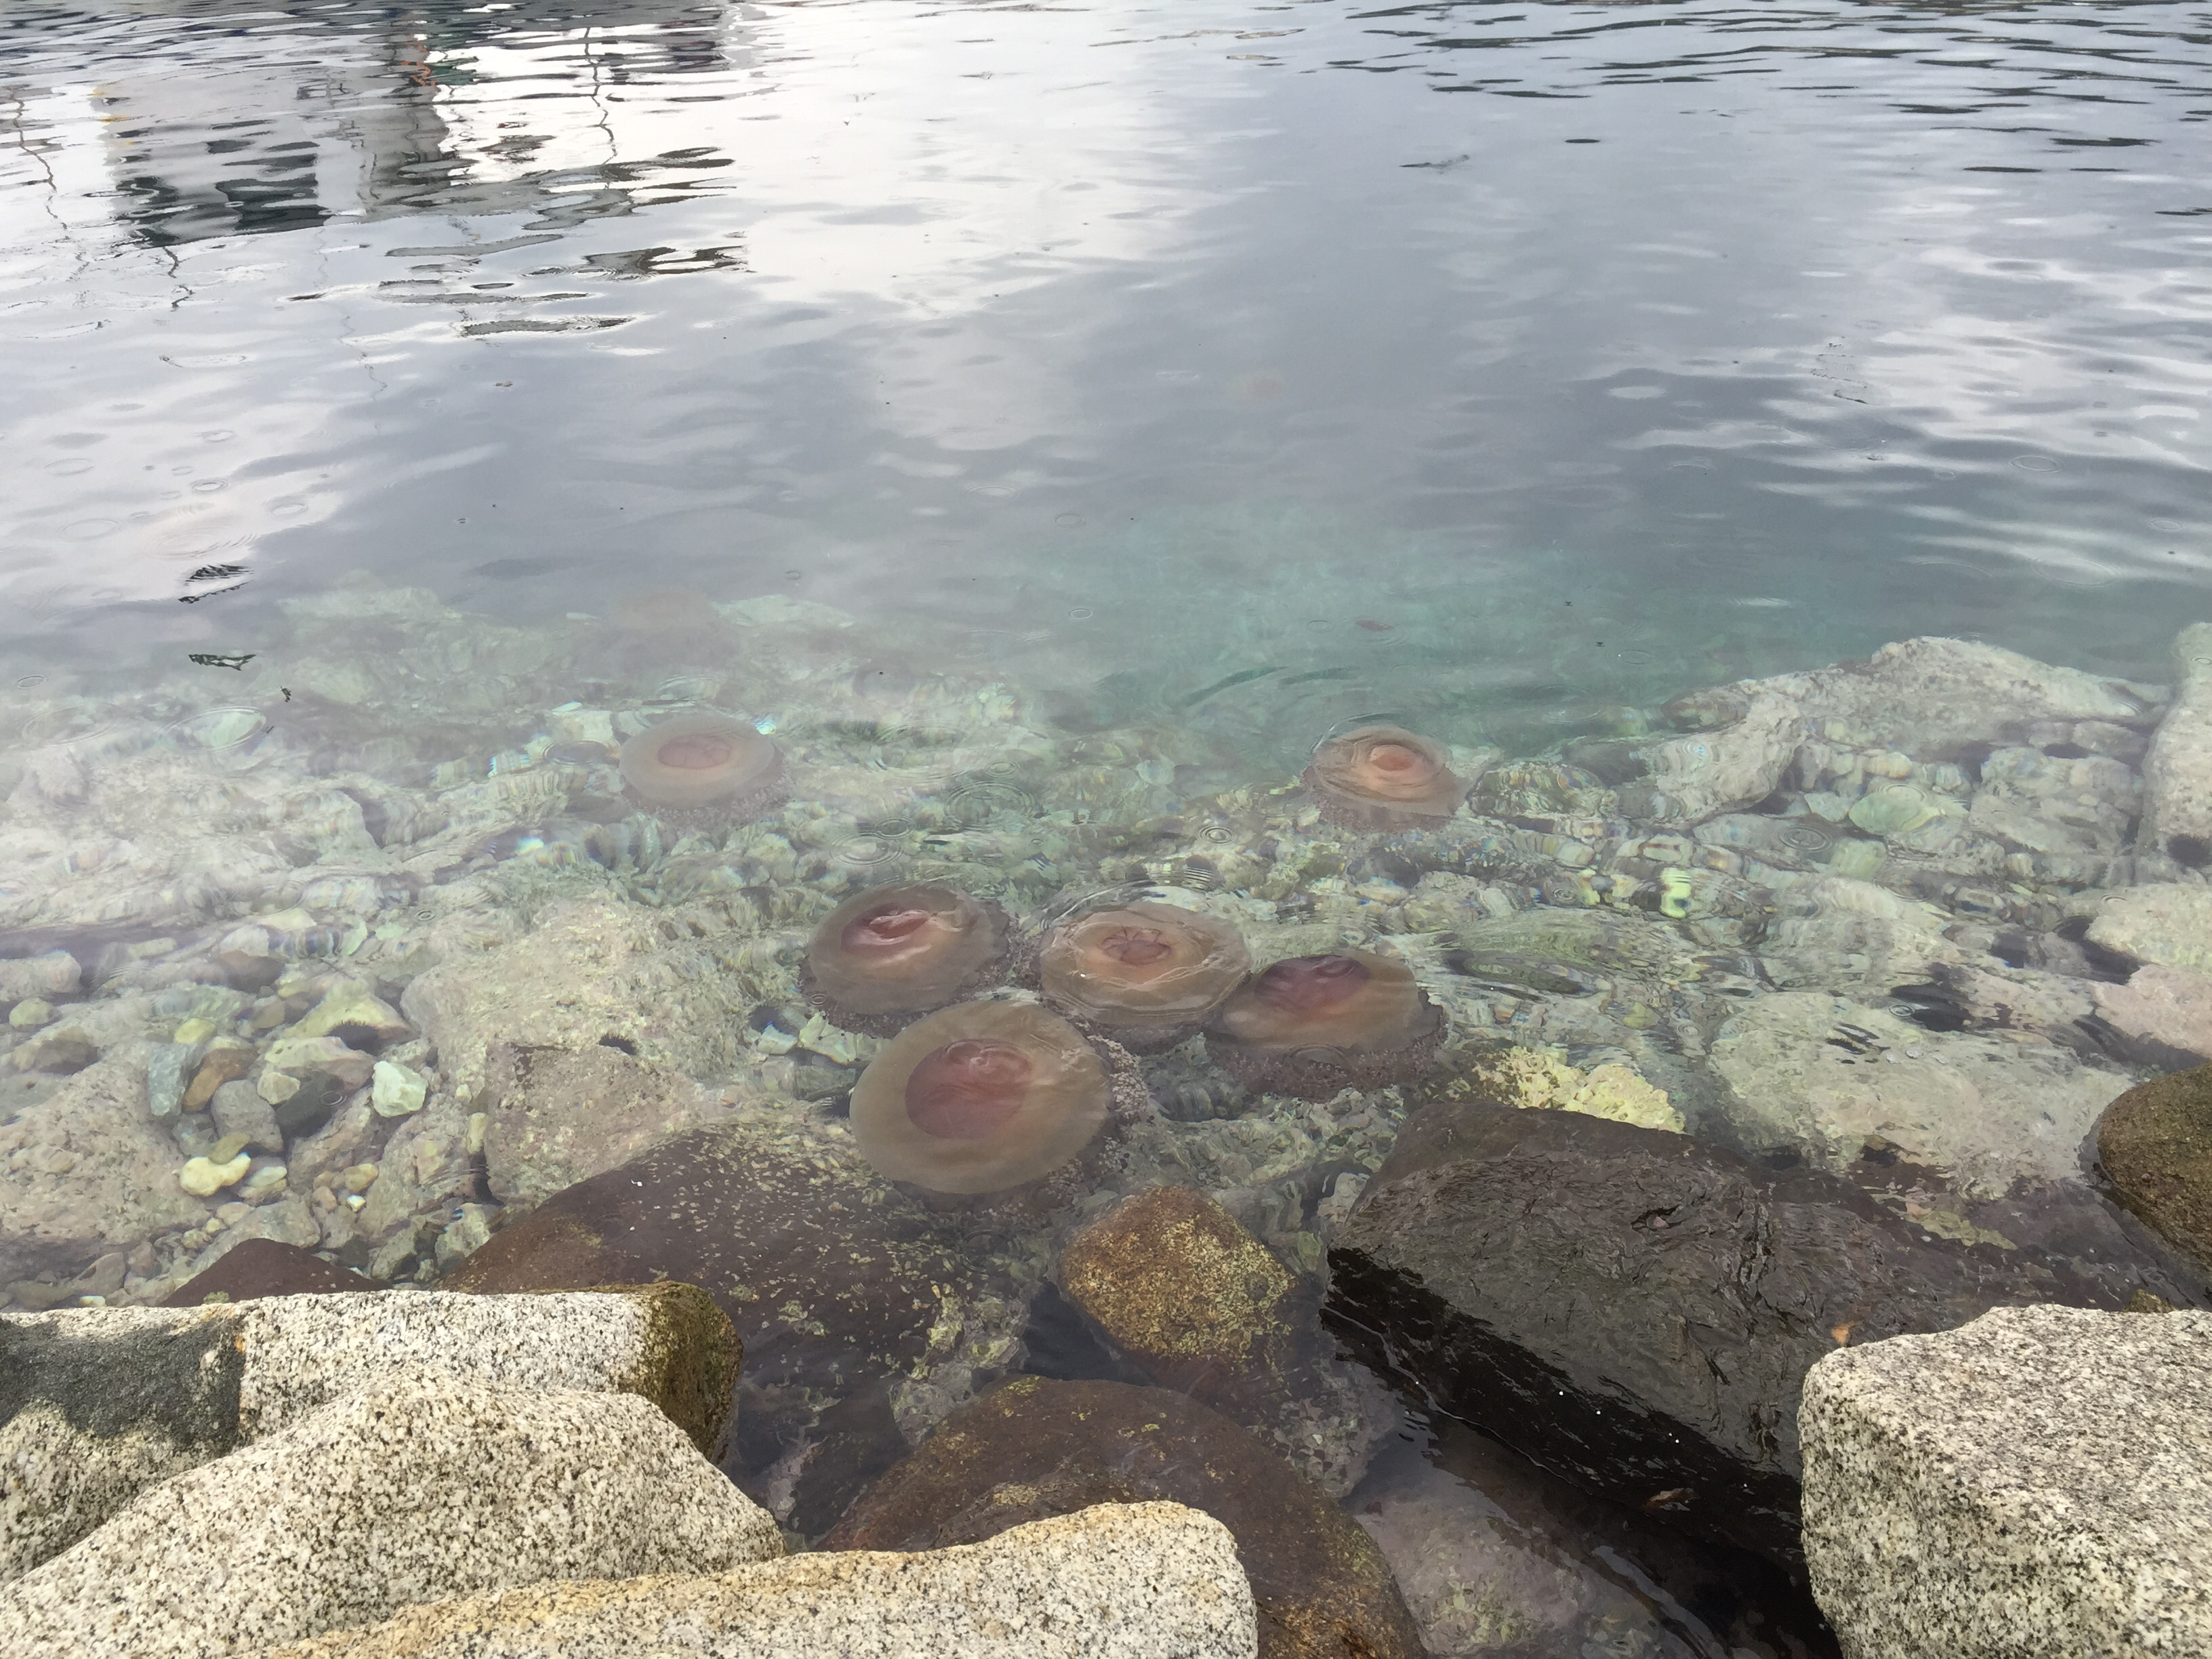 Mix Of Relaxed Jellies, Boulders, Outdoor, Underwater, Tranquility, HQ Photo